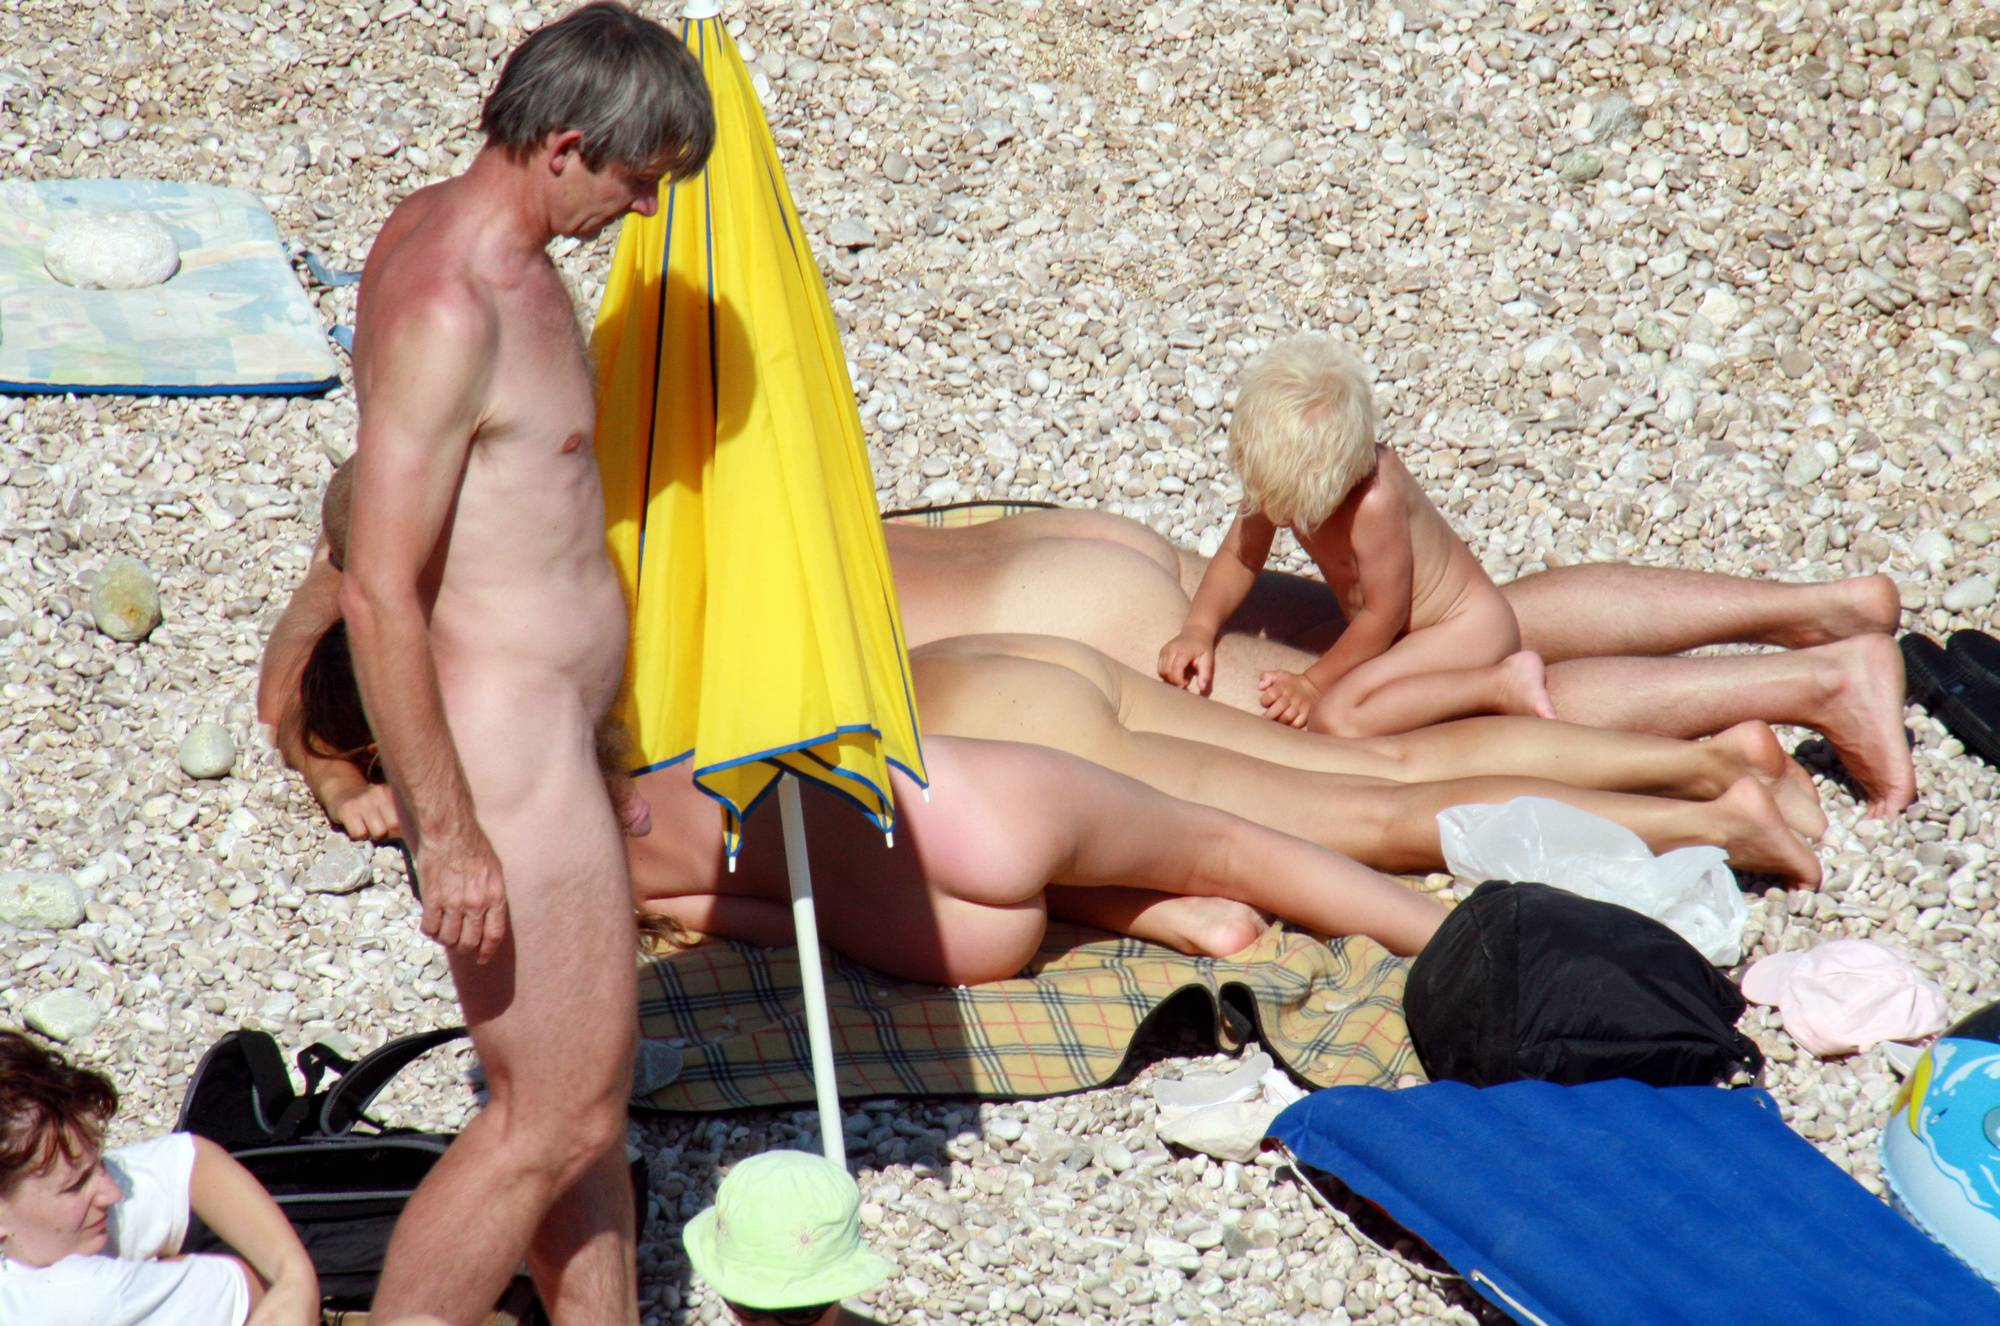 Nudist Pictures Naturist Beach Relaxation - 1